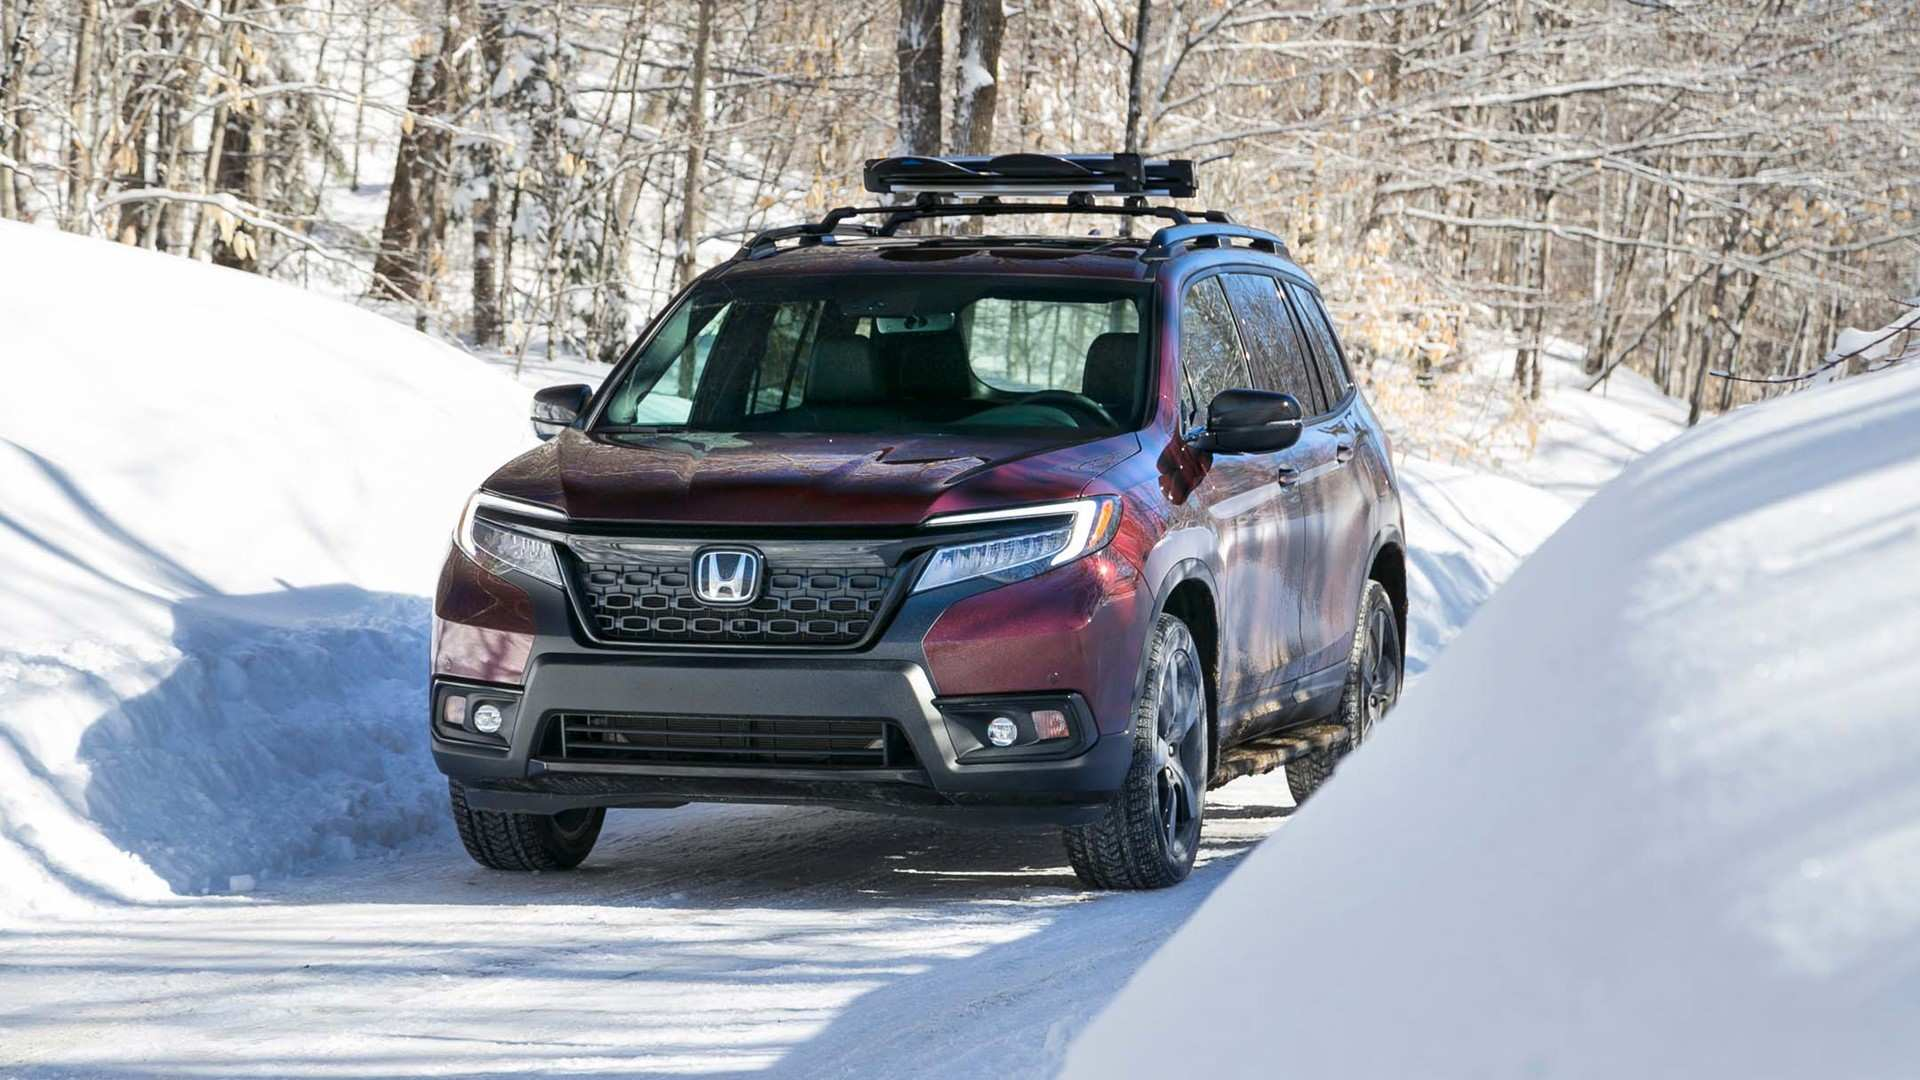 60 New The The New Honda 2019 First Drive Pricing for The The New Honda 2019 First Drive